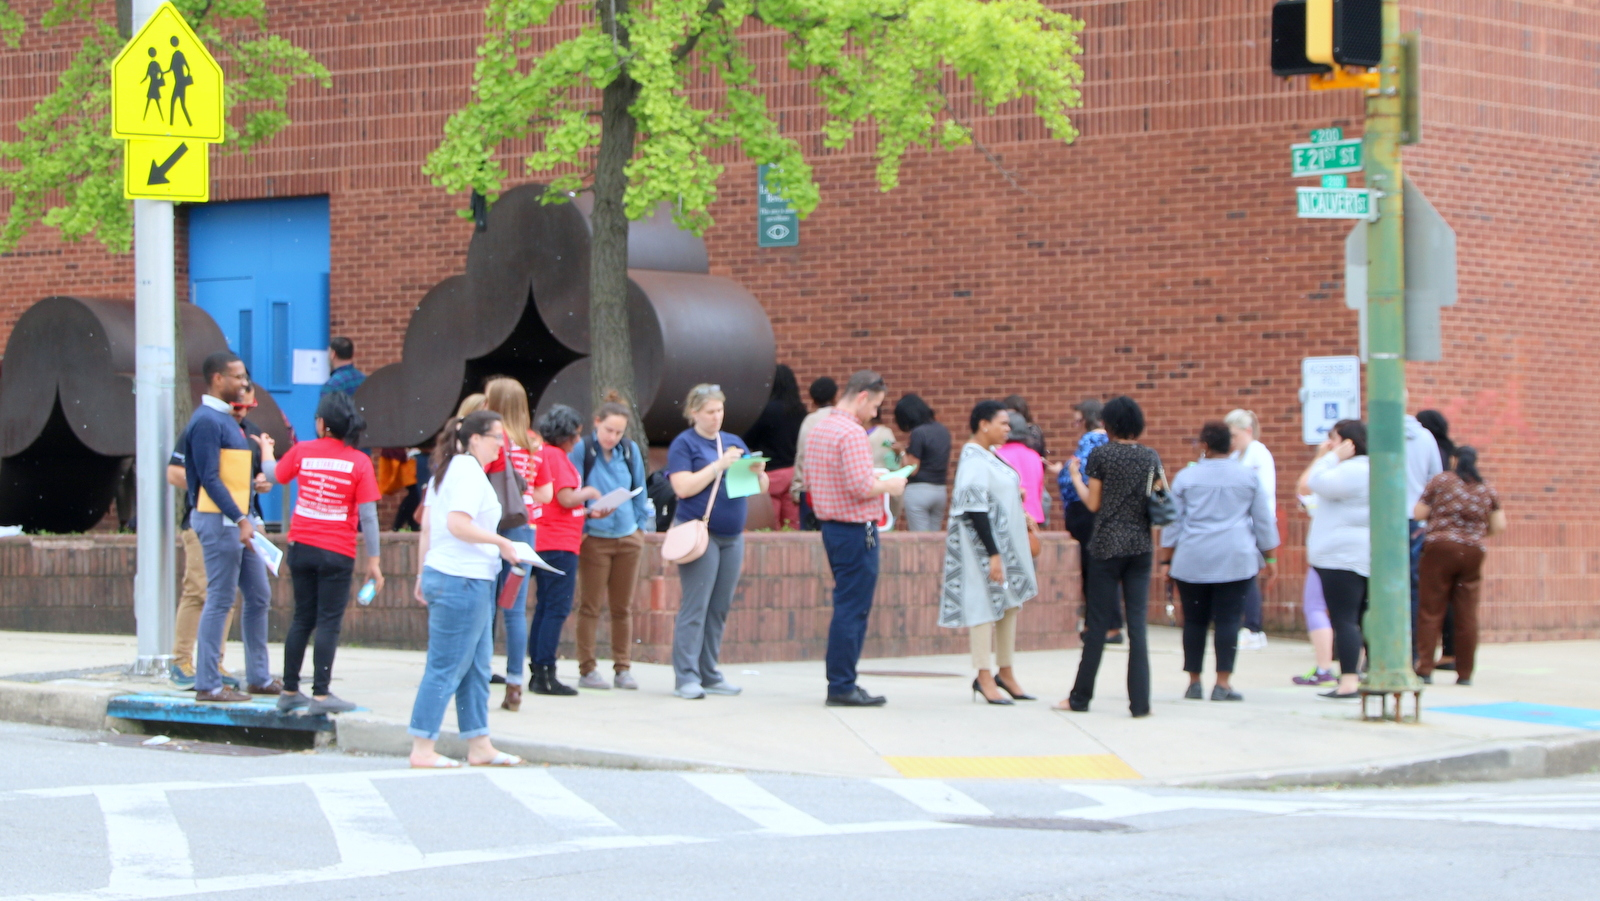 At the Dallas F. Nicholas Sr. Elementary School, members wait to vote in the Baltimore Teachers Union election. (Fern Shen)